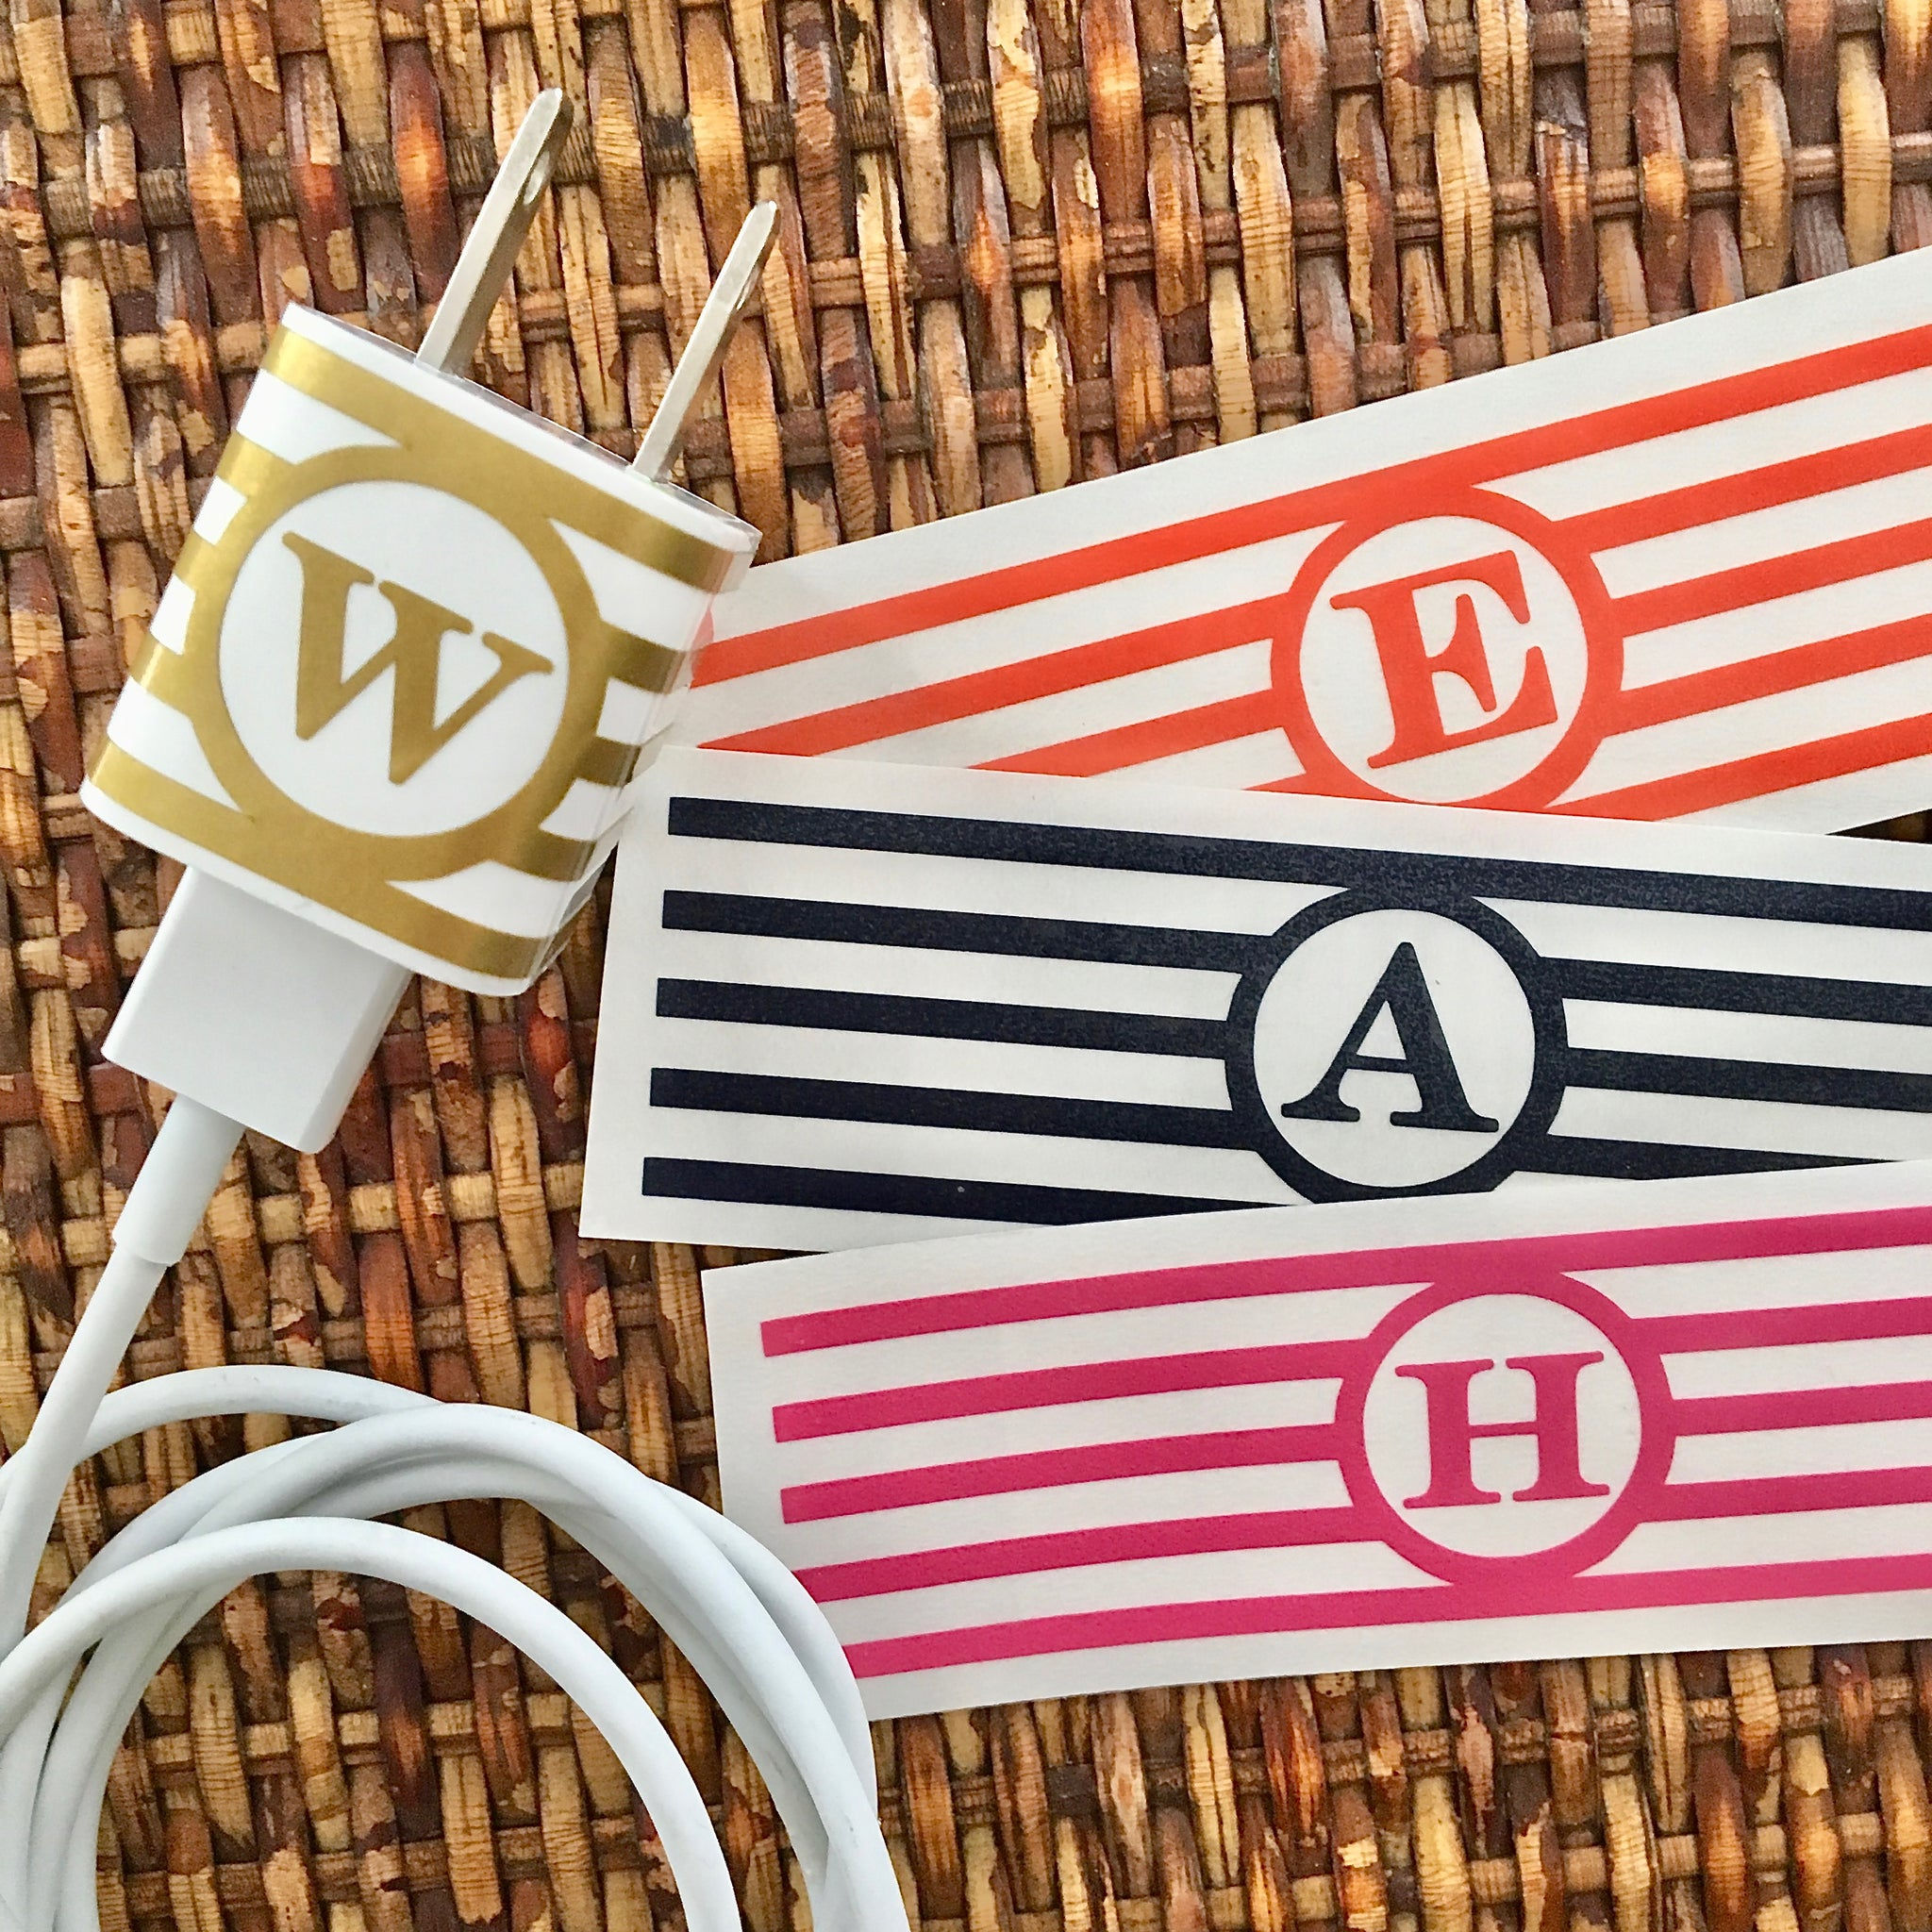 Striped personalized iphone/ipad charger wrap close up